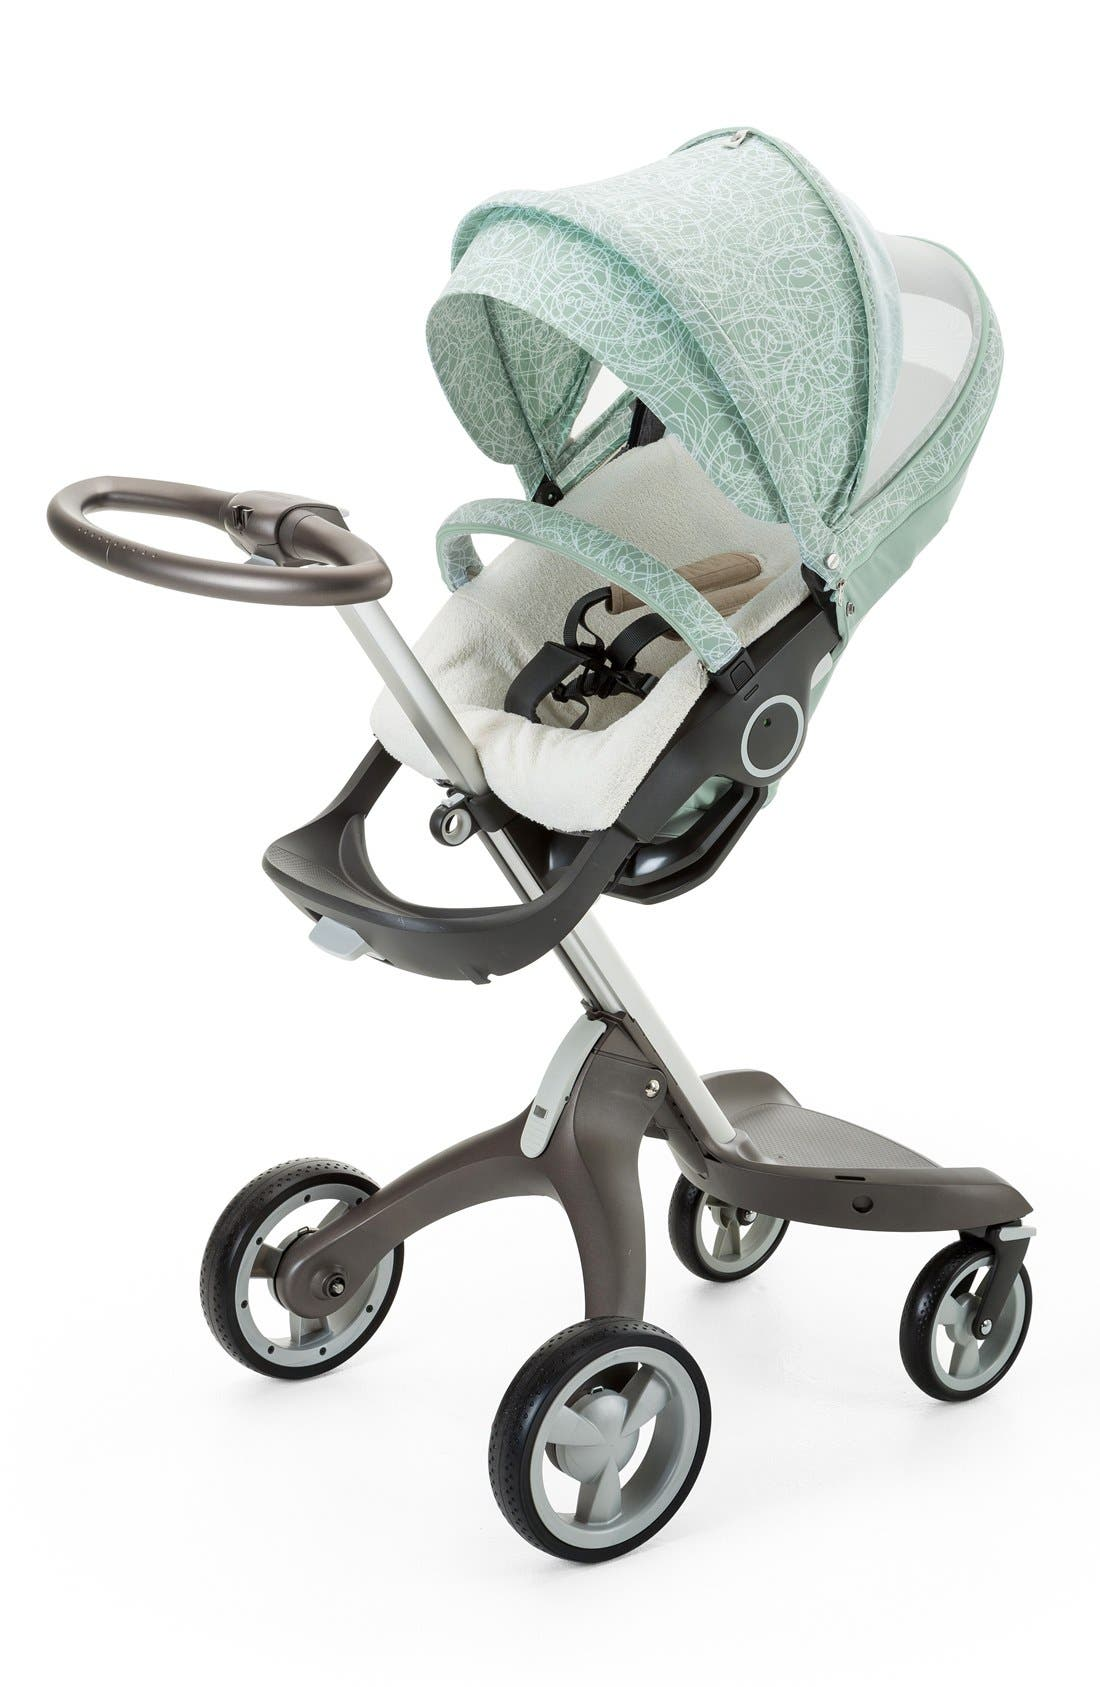 Baby 'Xplory<sup>®</sup> Stroller Summer Kit' Shade Set,                             Main thumbnail 1, color,                             SALTY BLUE